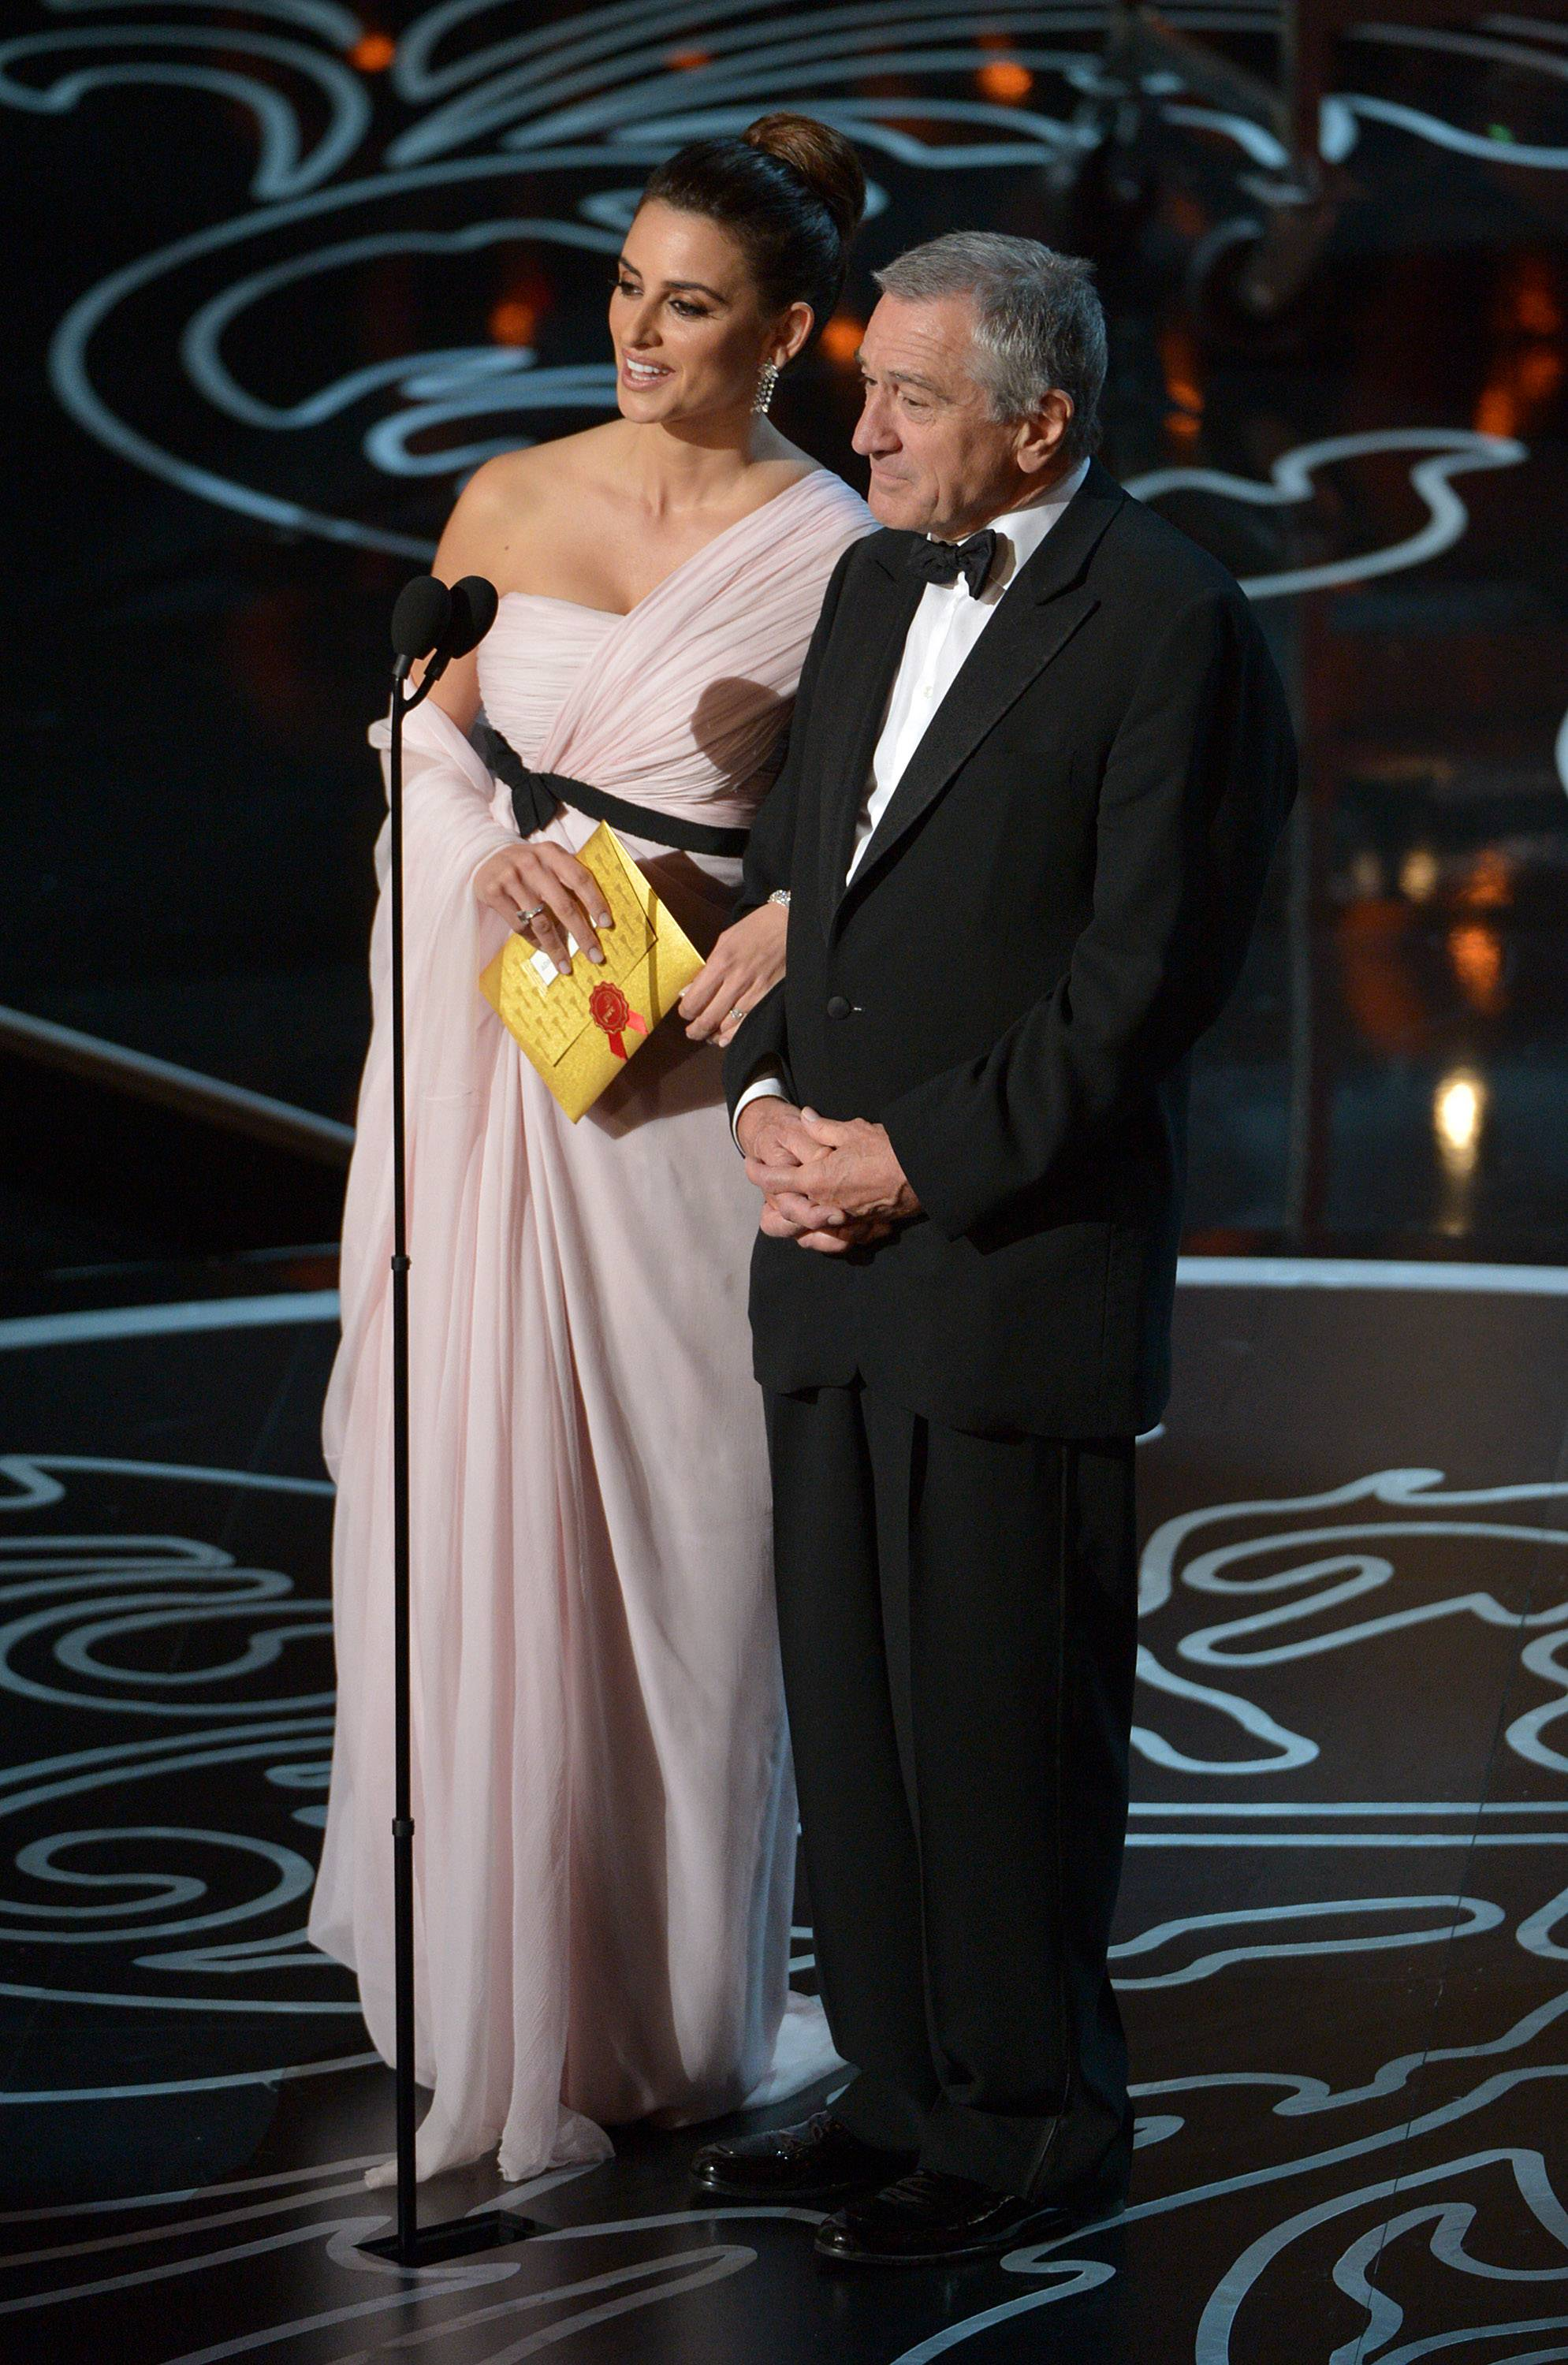 Penelope Cruz, left, and Robert De Niro speak on stage before presenting an award during the Oscars.